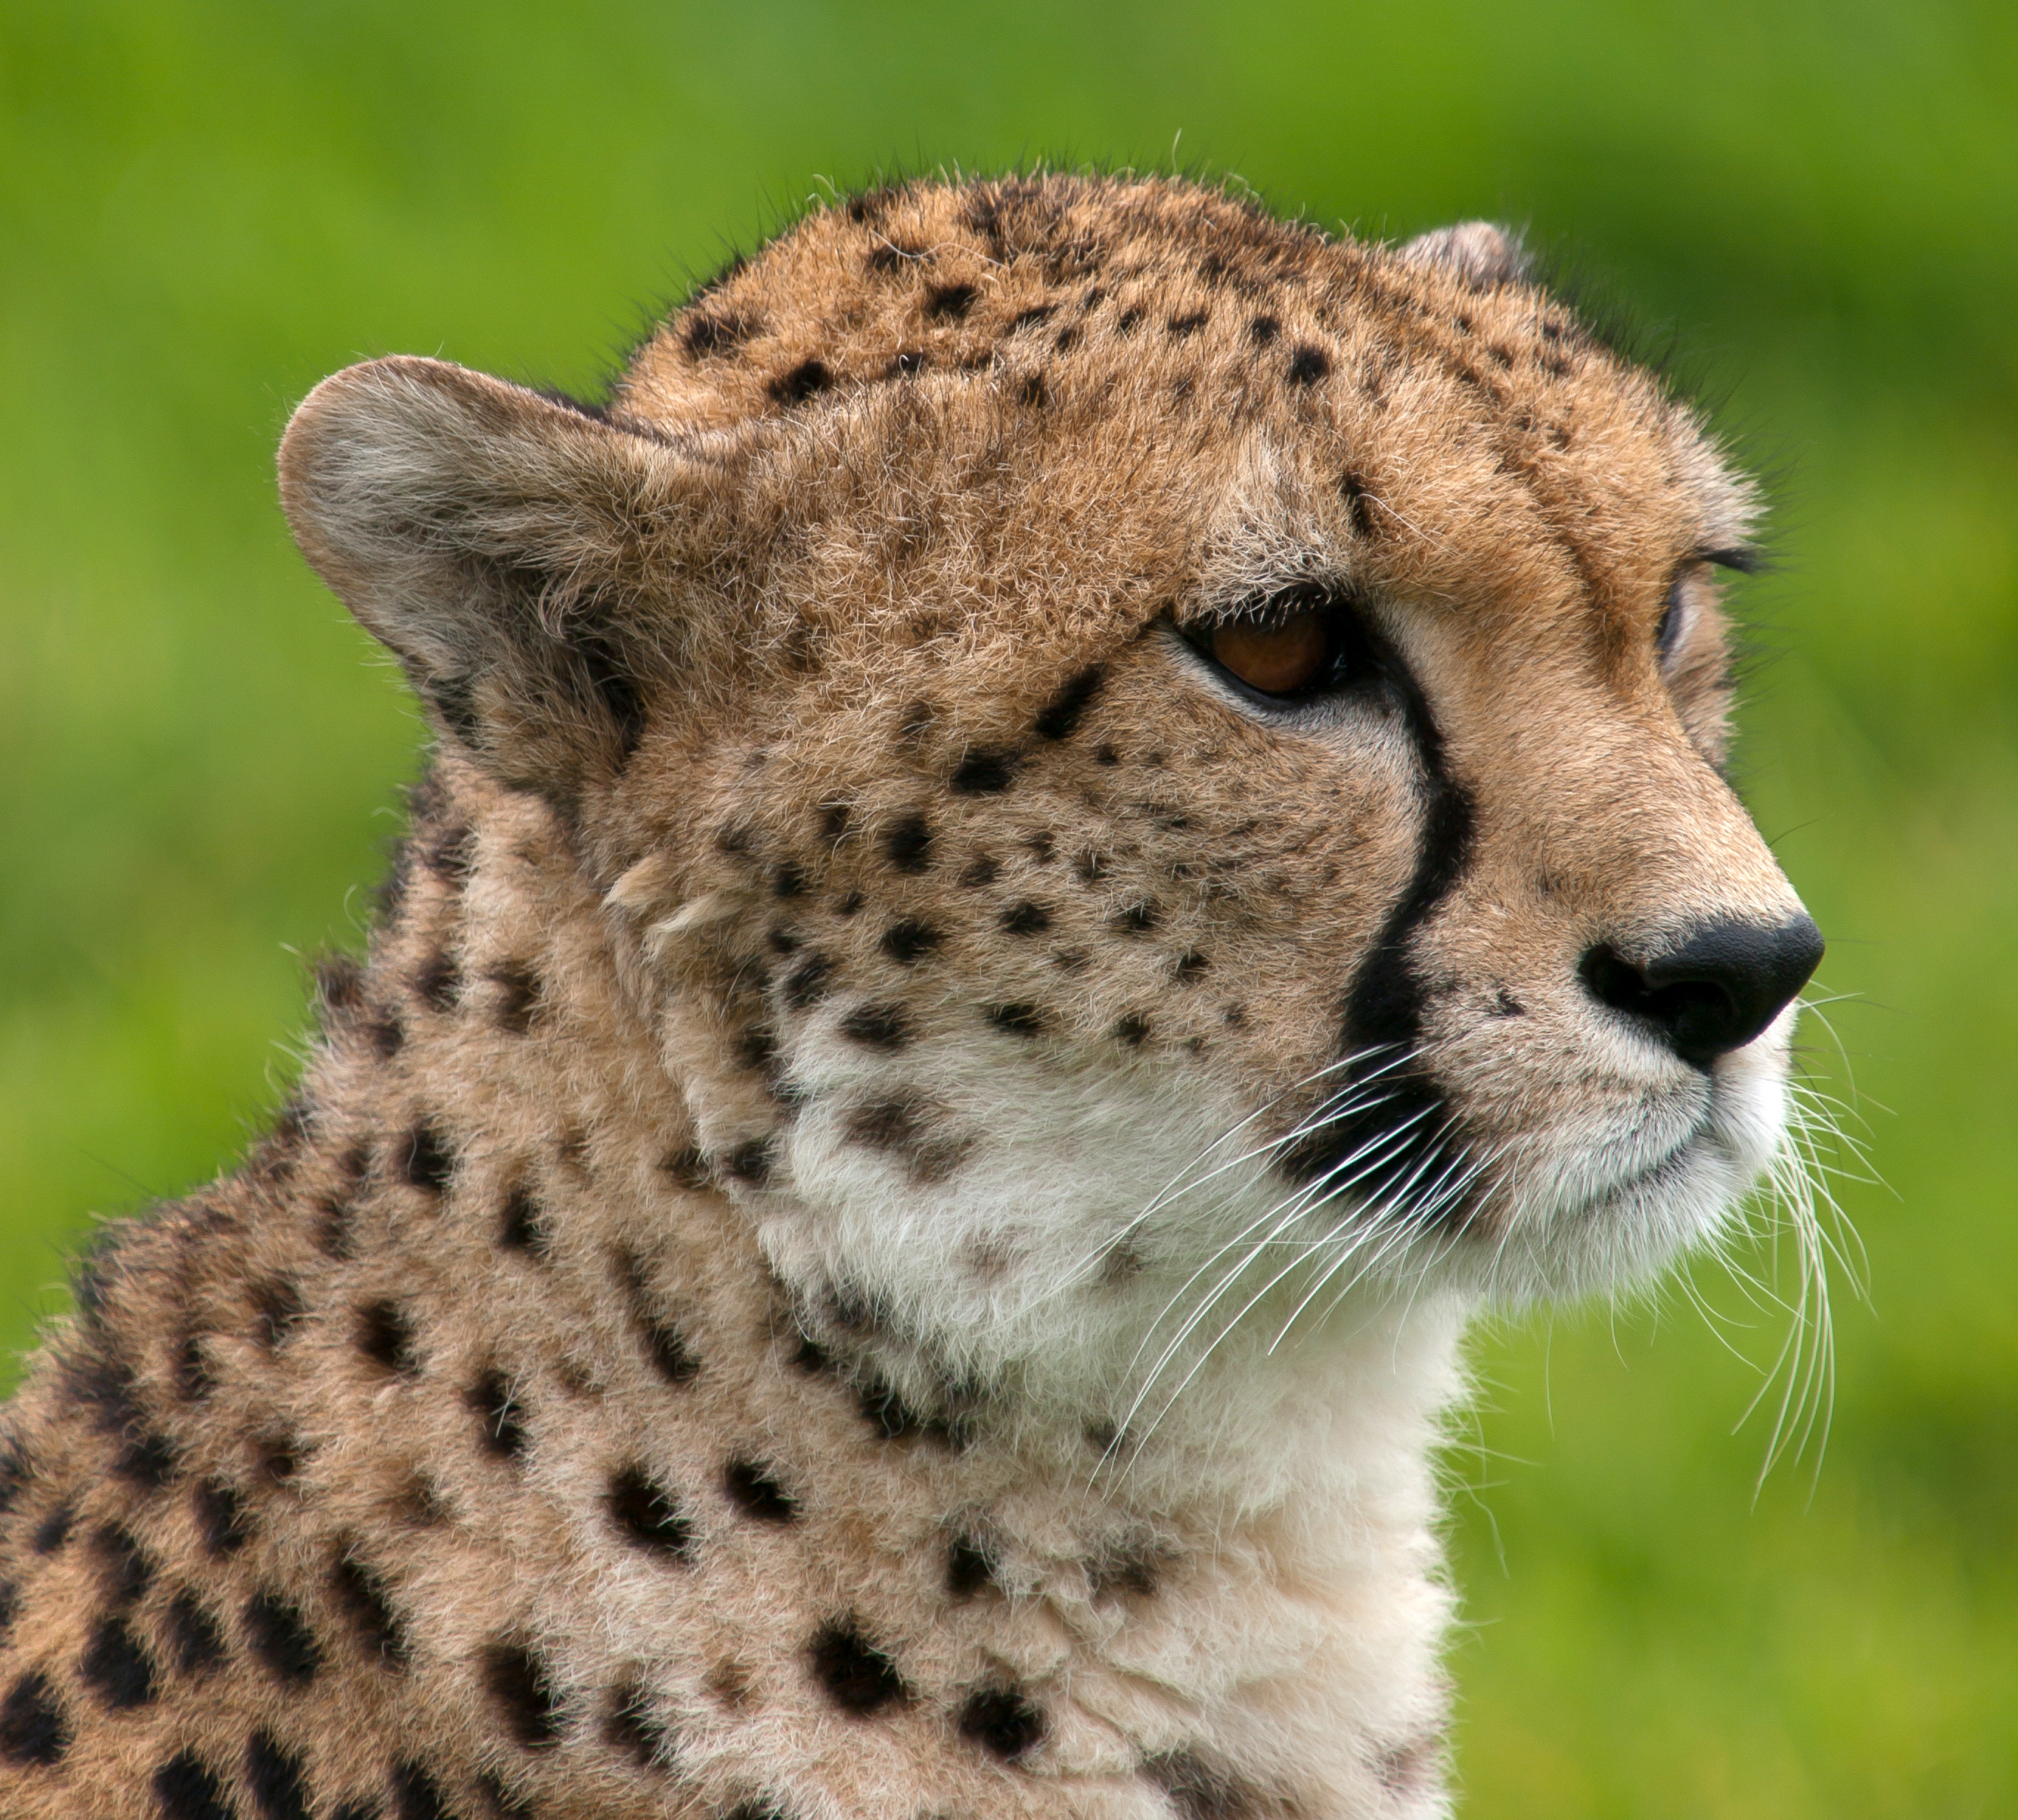 Cheetah - 11 photo